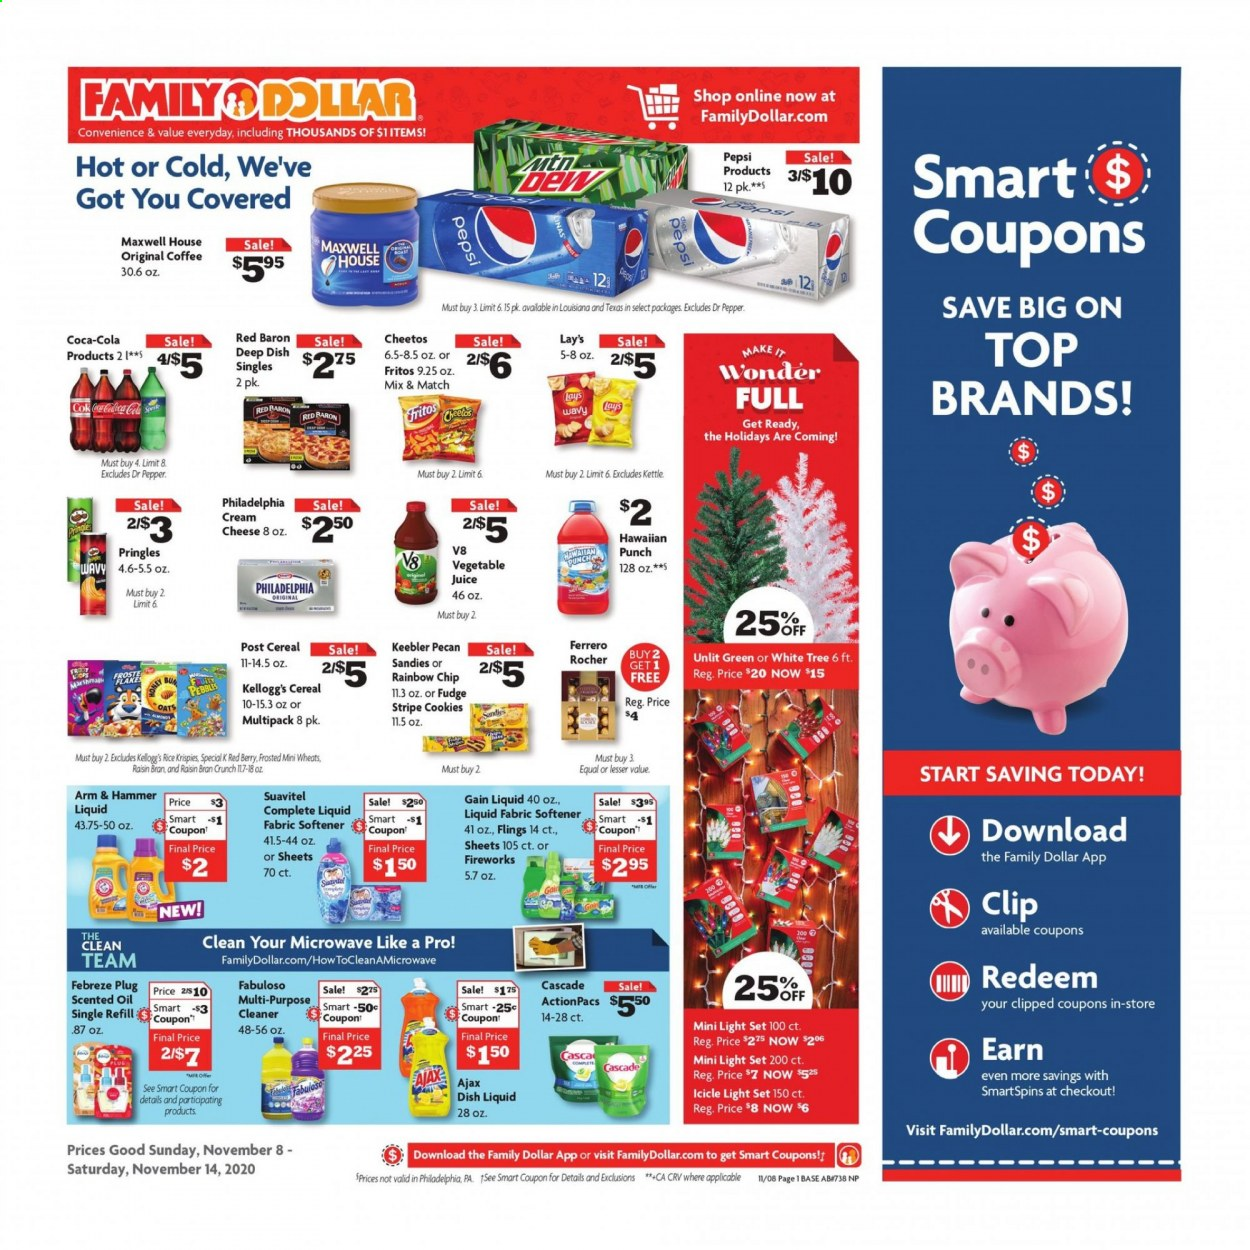 Family Dollar Flyer - 11.08.2020 - 11.14.2020 - Sales products - ARM & HAMMER, bran, cascade, cereals, coffee, cookies, Febreze, Fritos, fudge, Gain, light set, Maxwell House, rice, icicle light, philadelphia, Pringles, cheetos, Pepsi, oats, cheese, juice, pepper, hammer, softener, berry, Lay's, punch, dishwashing liquid, cleaner, refill, oil, cream, kettle, vegetable. Page 1.